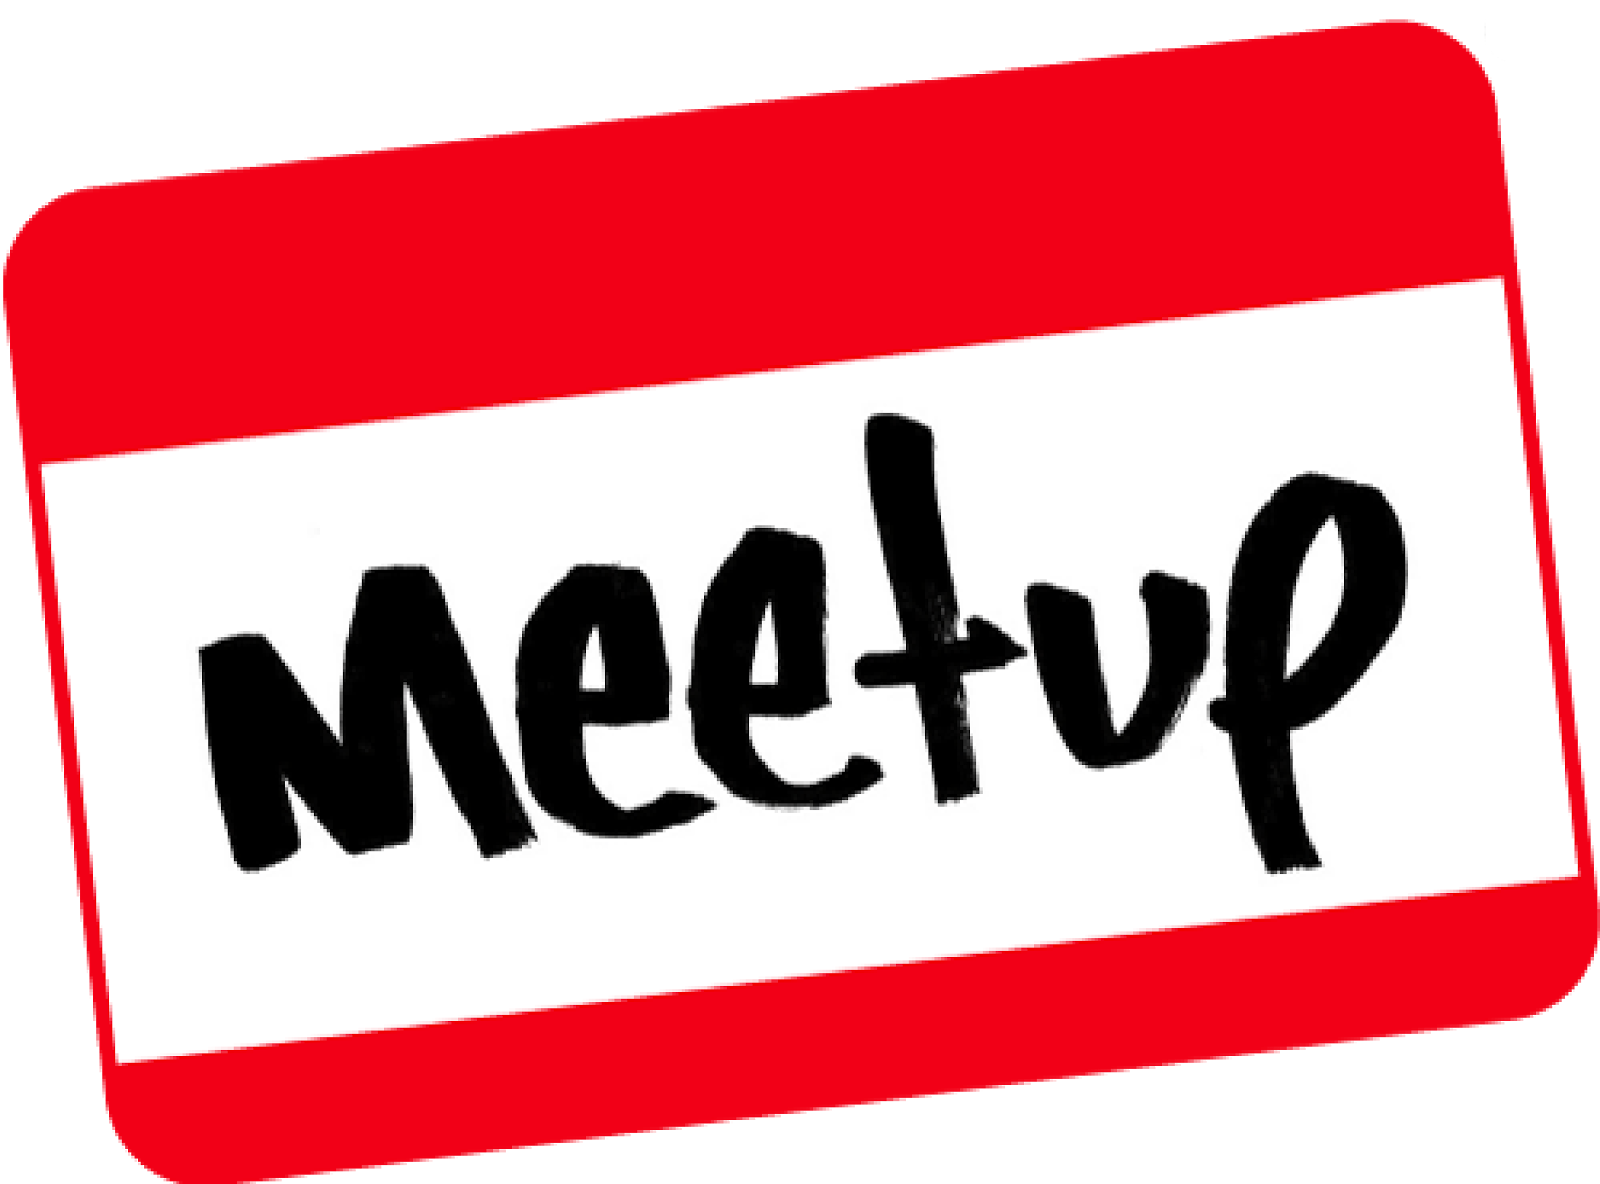 https://www.meetup.com/es-ES/madriagil/events/265410974/